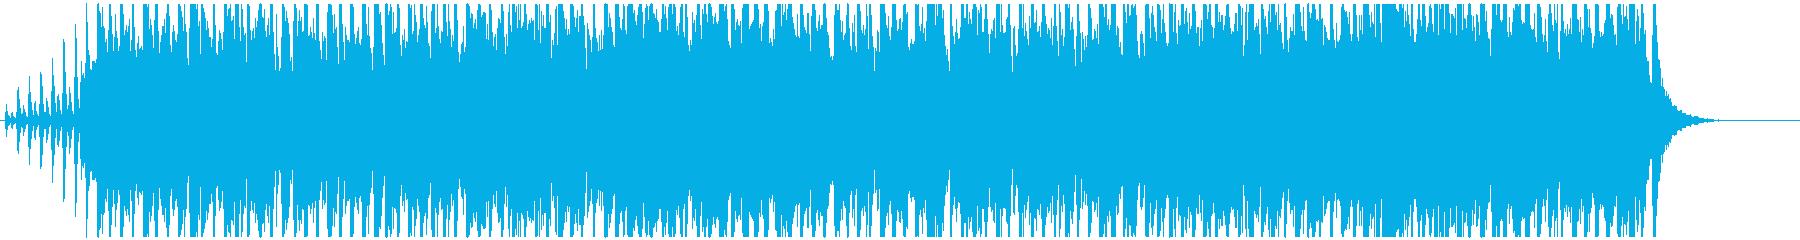 Rhythmic and bright BGM's reproduced waveform